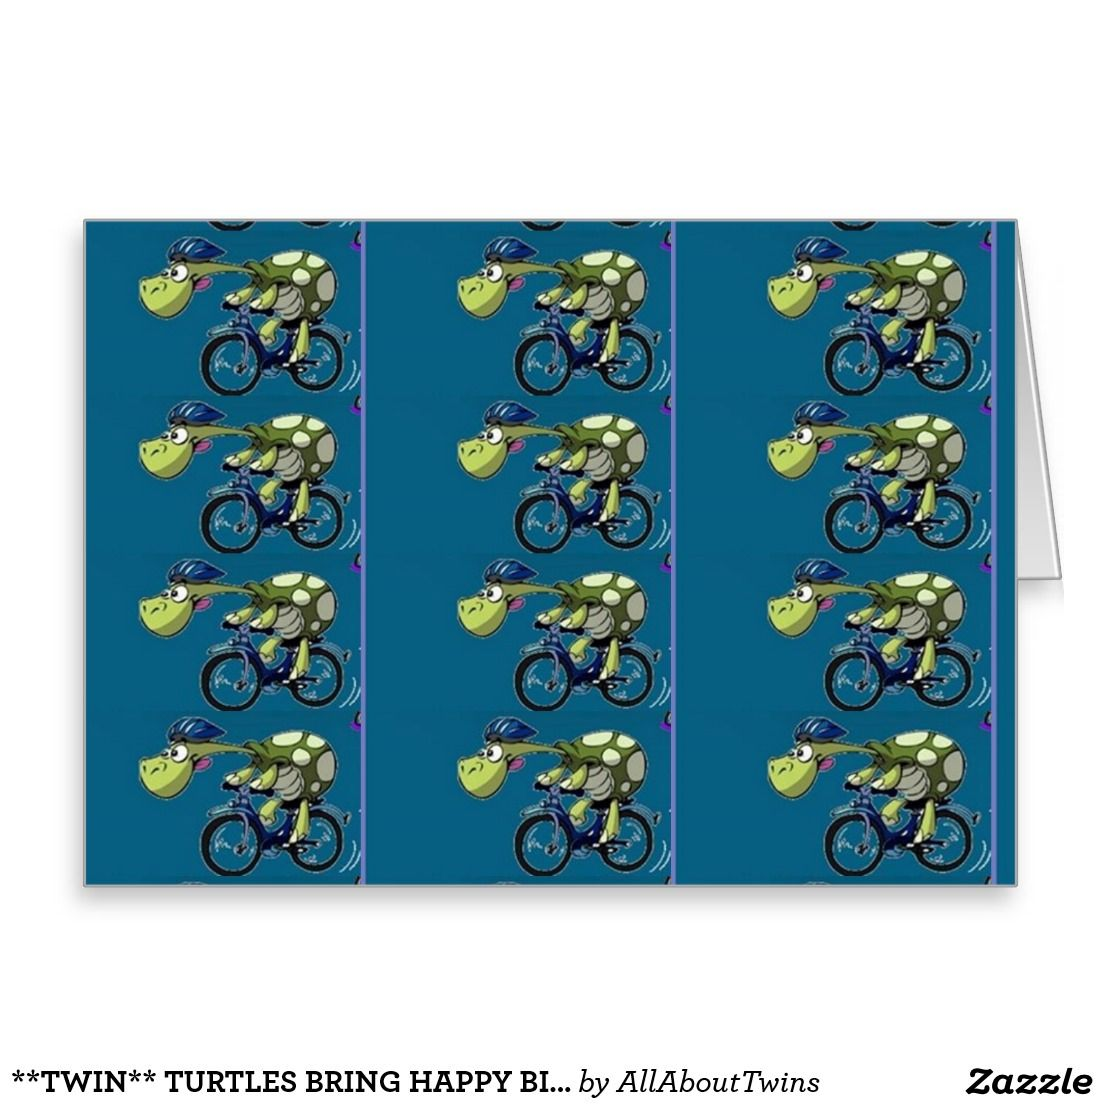 Twin turtles bring happy birthday wishes to u card happy twin turtles bring happy birthday wishes to you for one turtle would bookmarktalkfo Images